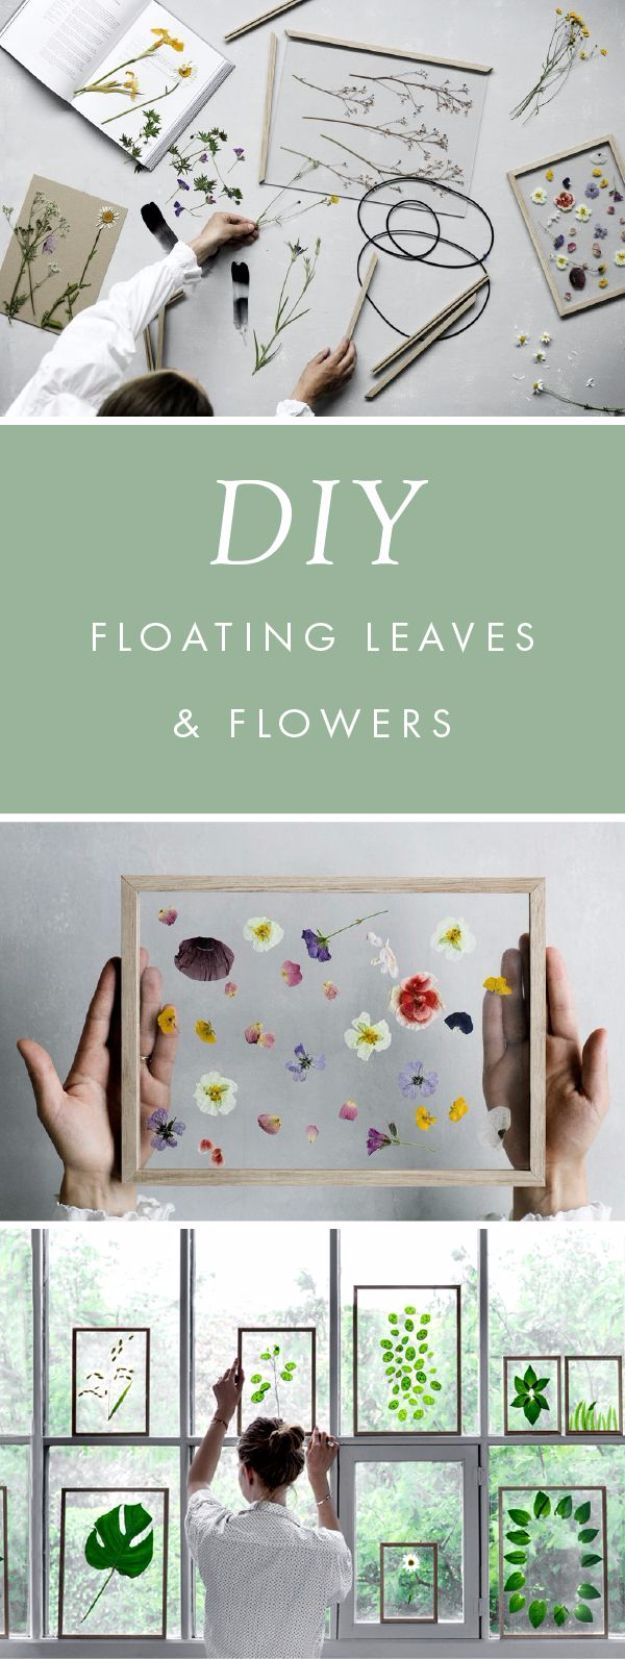 DIY Gift for the Office - DIY Floating Leaves And Flowers - DIY Gift Ideas for Your Boss and Coworkers - Cheap and Quick Presents to Make for Office Parties, Secret Santa Gifts - Cool Mason Jar Ideas, Creative Gift Baskets and Easy Office Christmas Presents http://diyjoy.com/diy-gifts-office